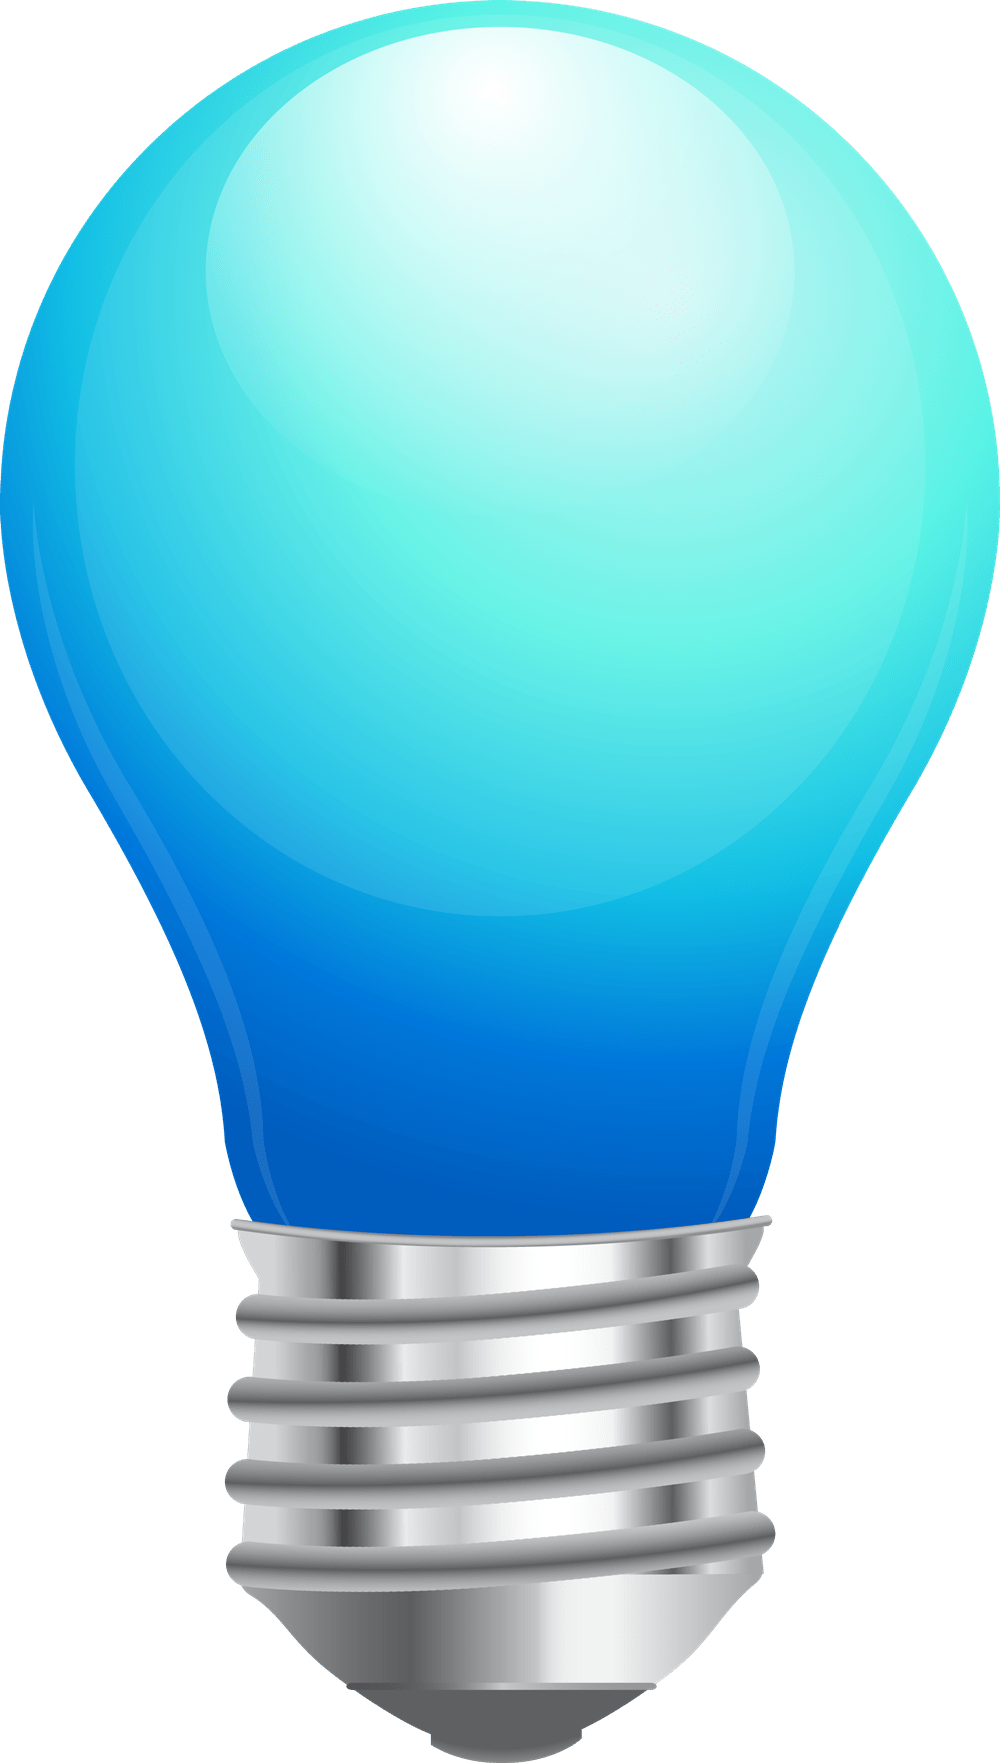 Light Bulb Image Clipart Free Download On Clipartmag